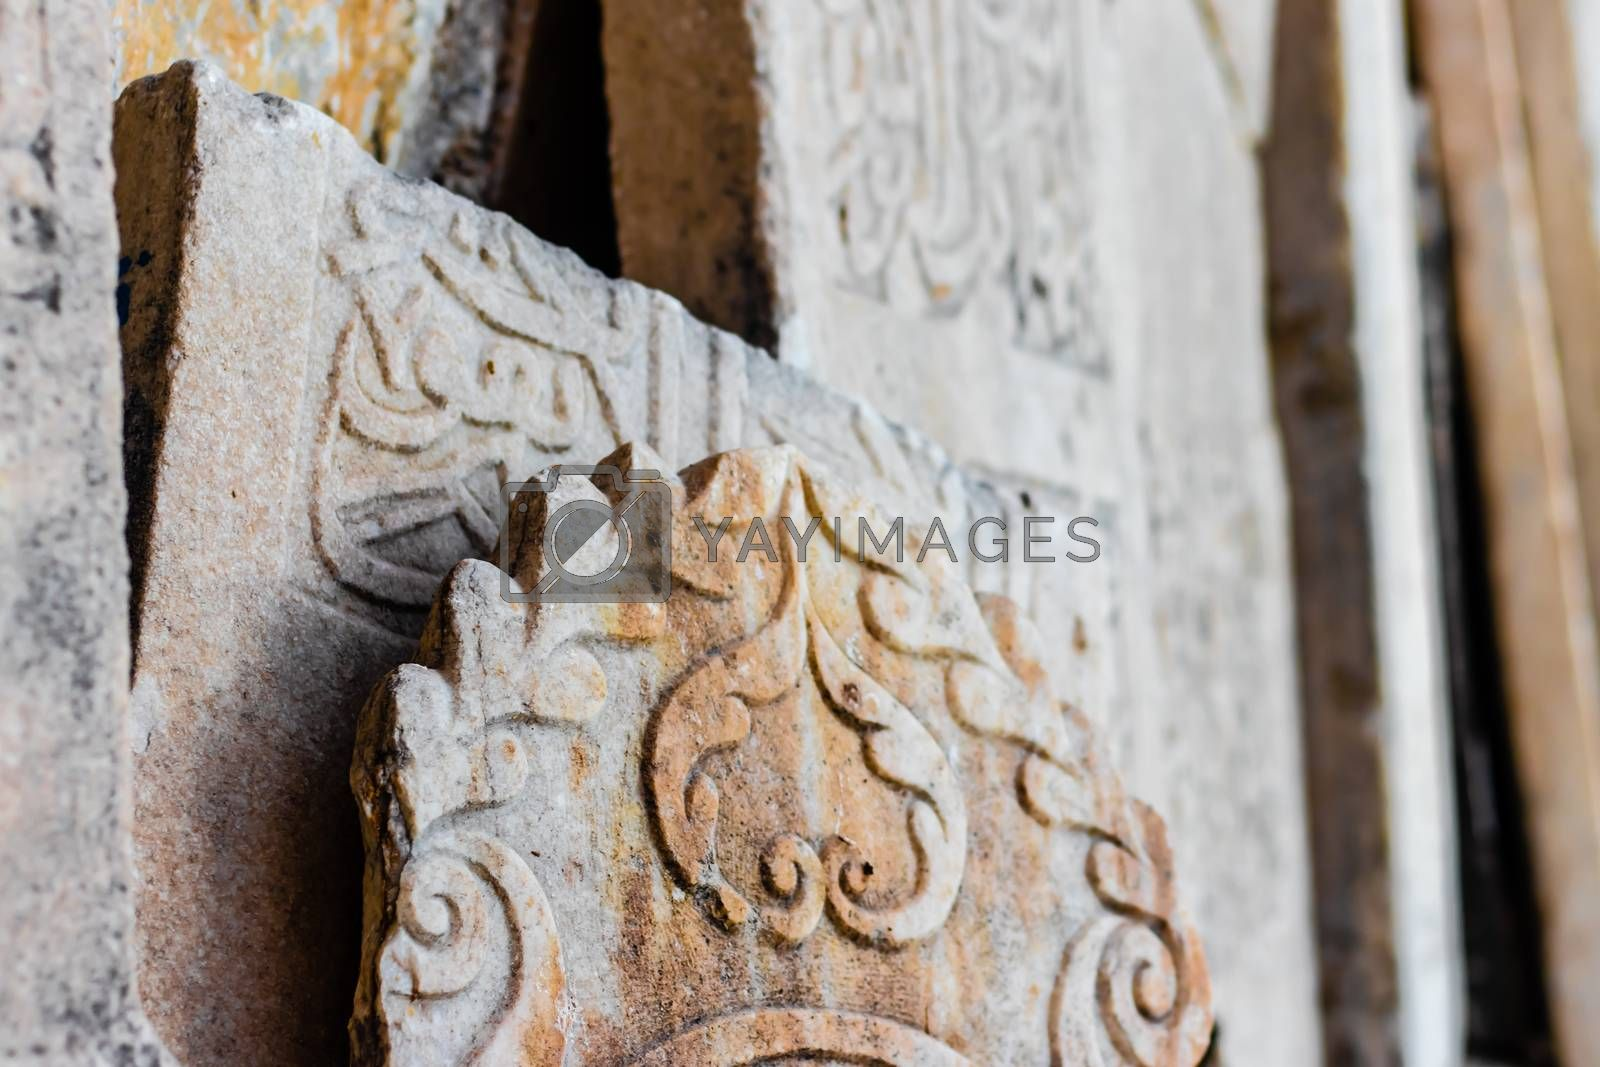 some antique tablets with interesting textures on them at a church at ephesus. photo has taken from izmir/turkey.